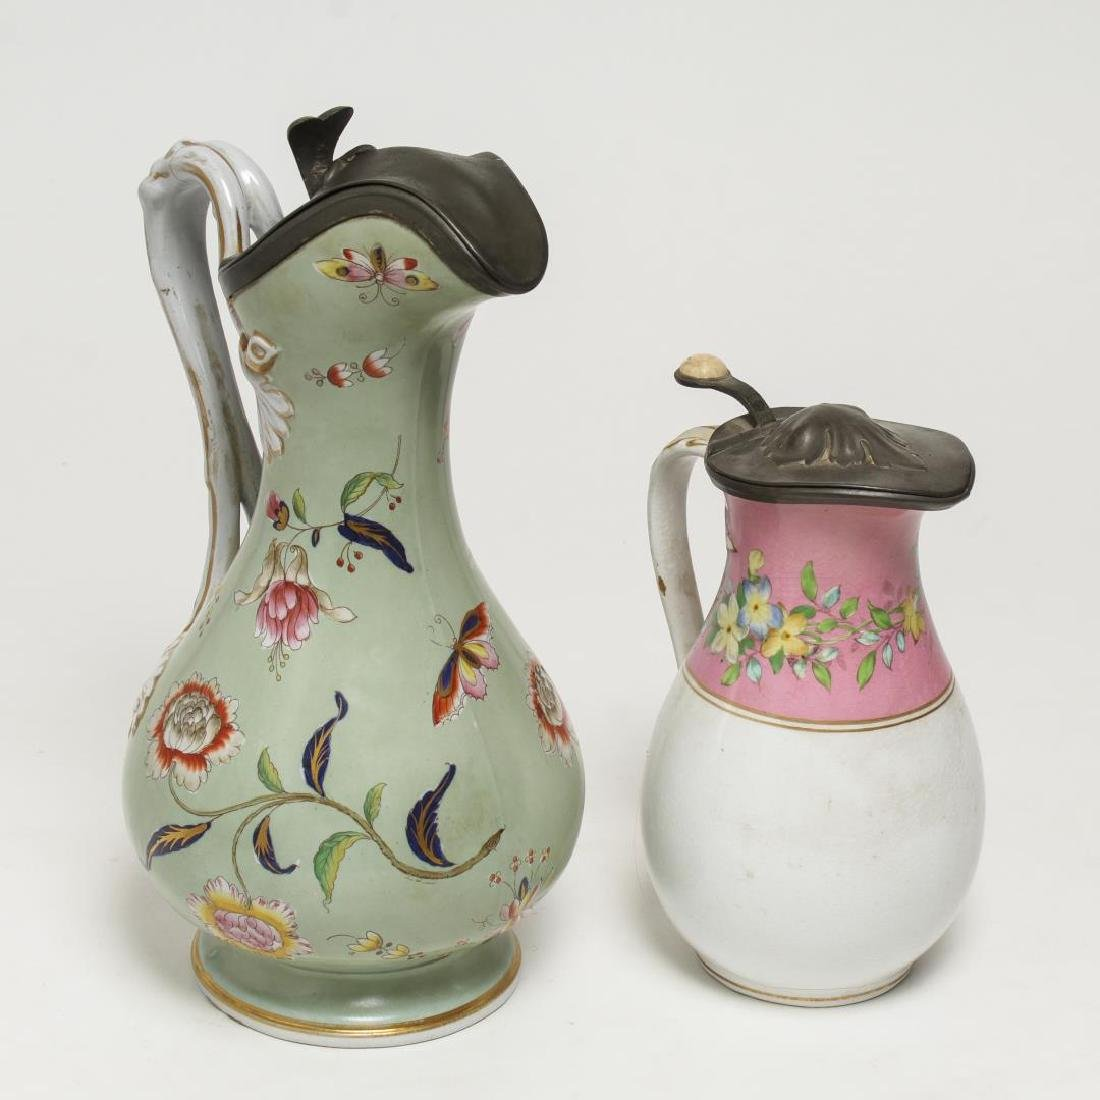 English Painted Porcelain & Pewter Table Jugs, 2